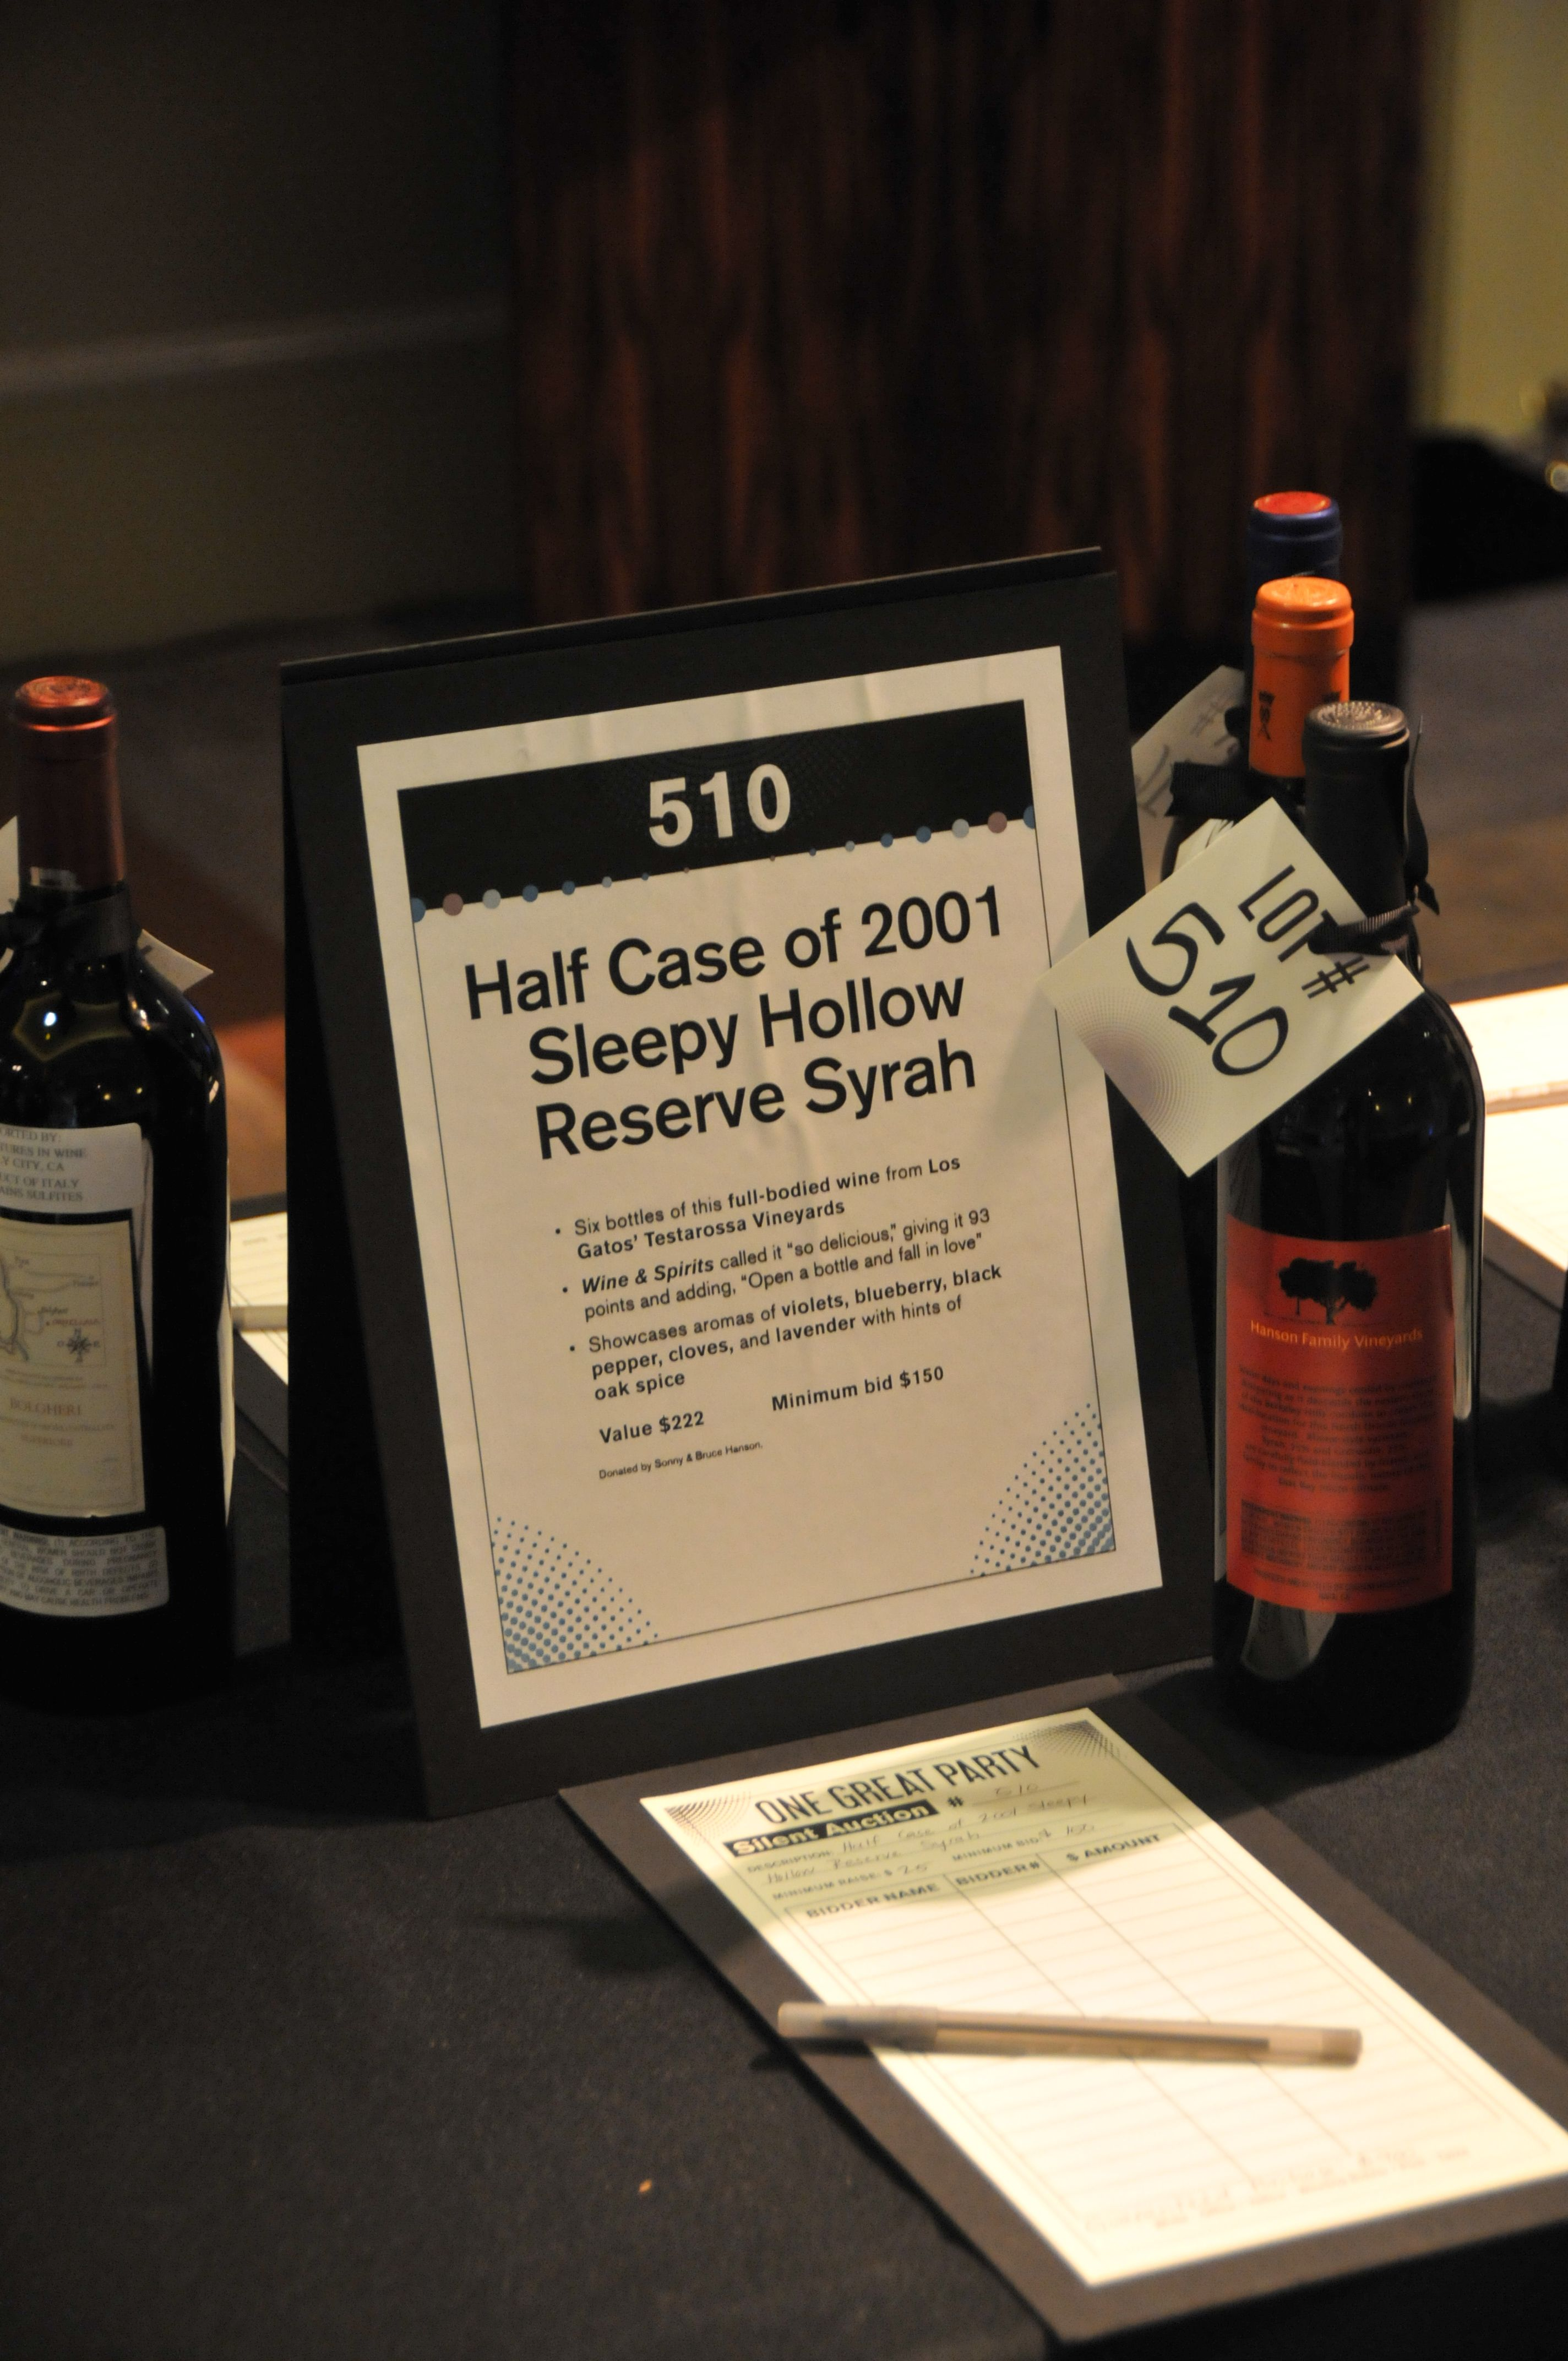 Silent Auction Display With Event Branding Elements